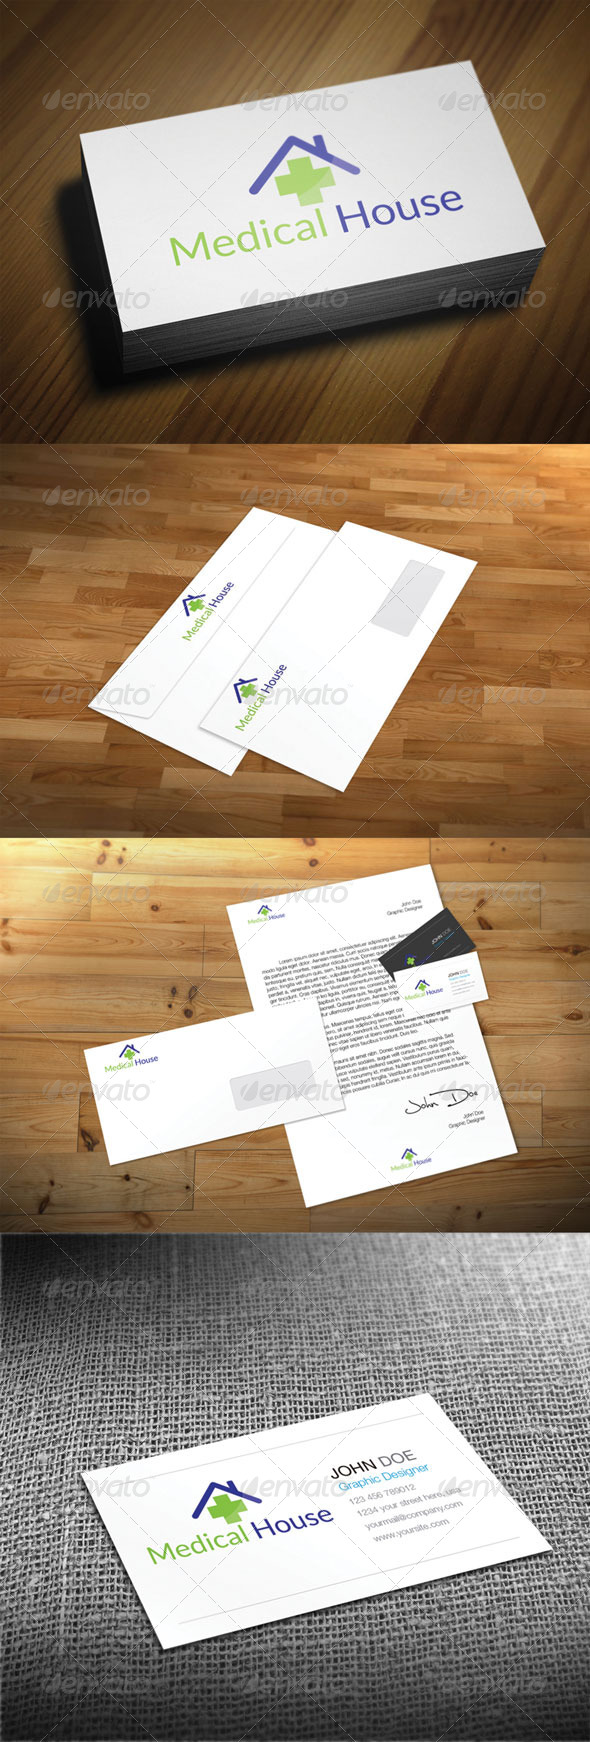 Medical House - Abstract Logo Templates